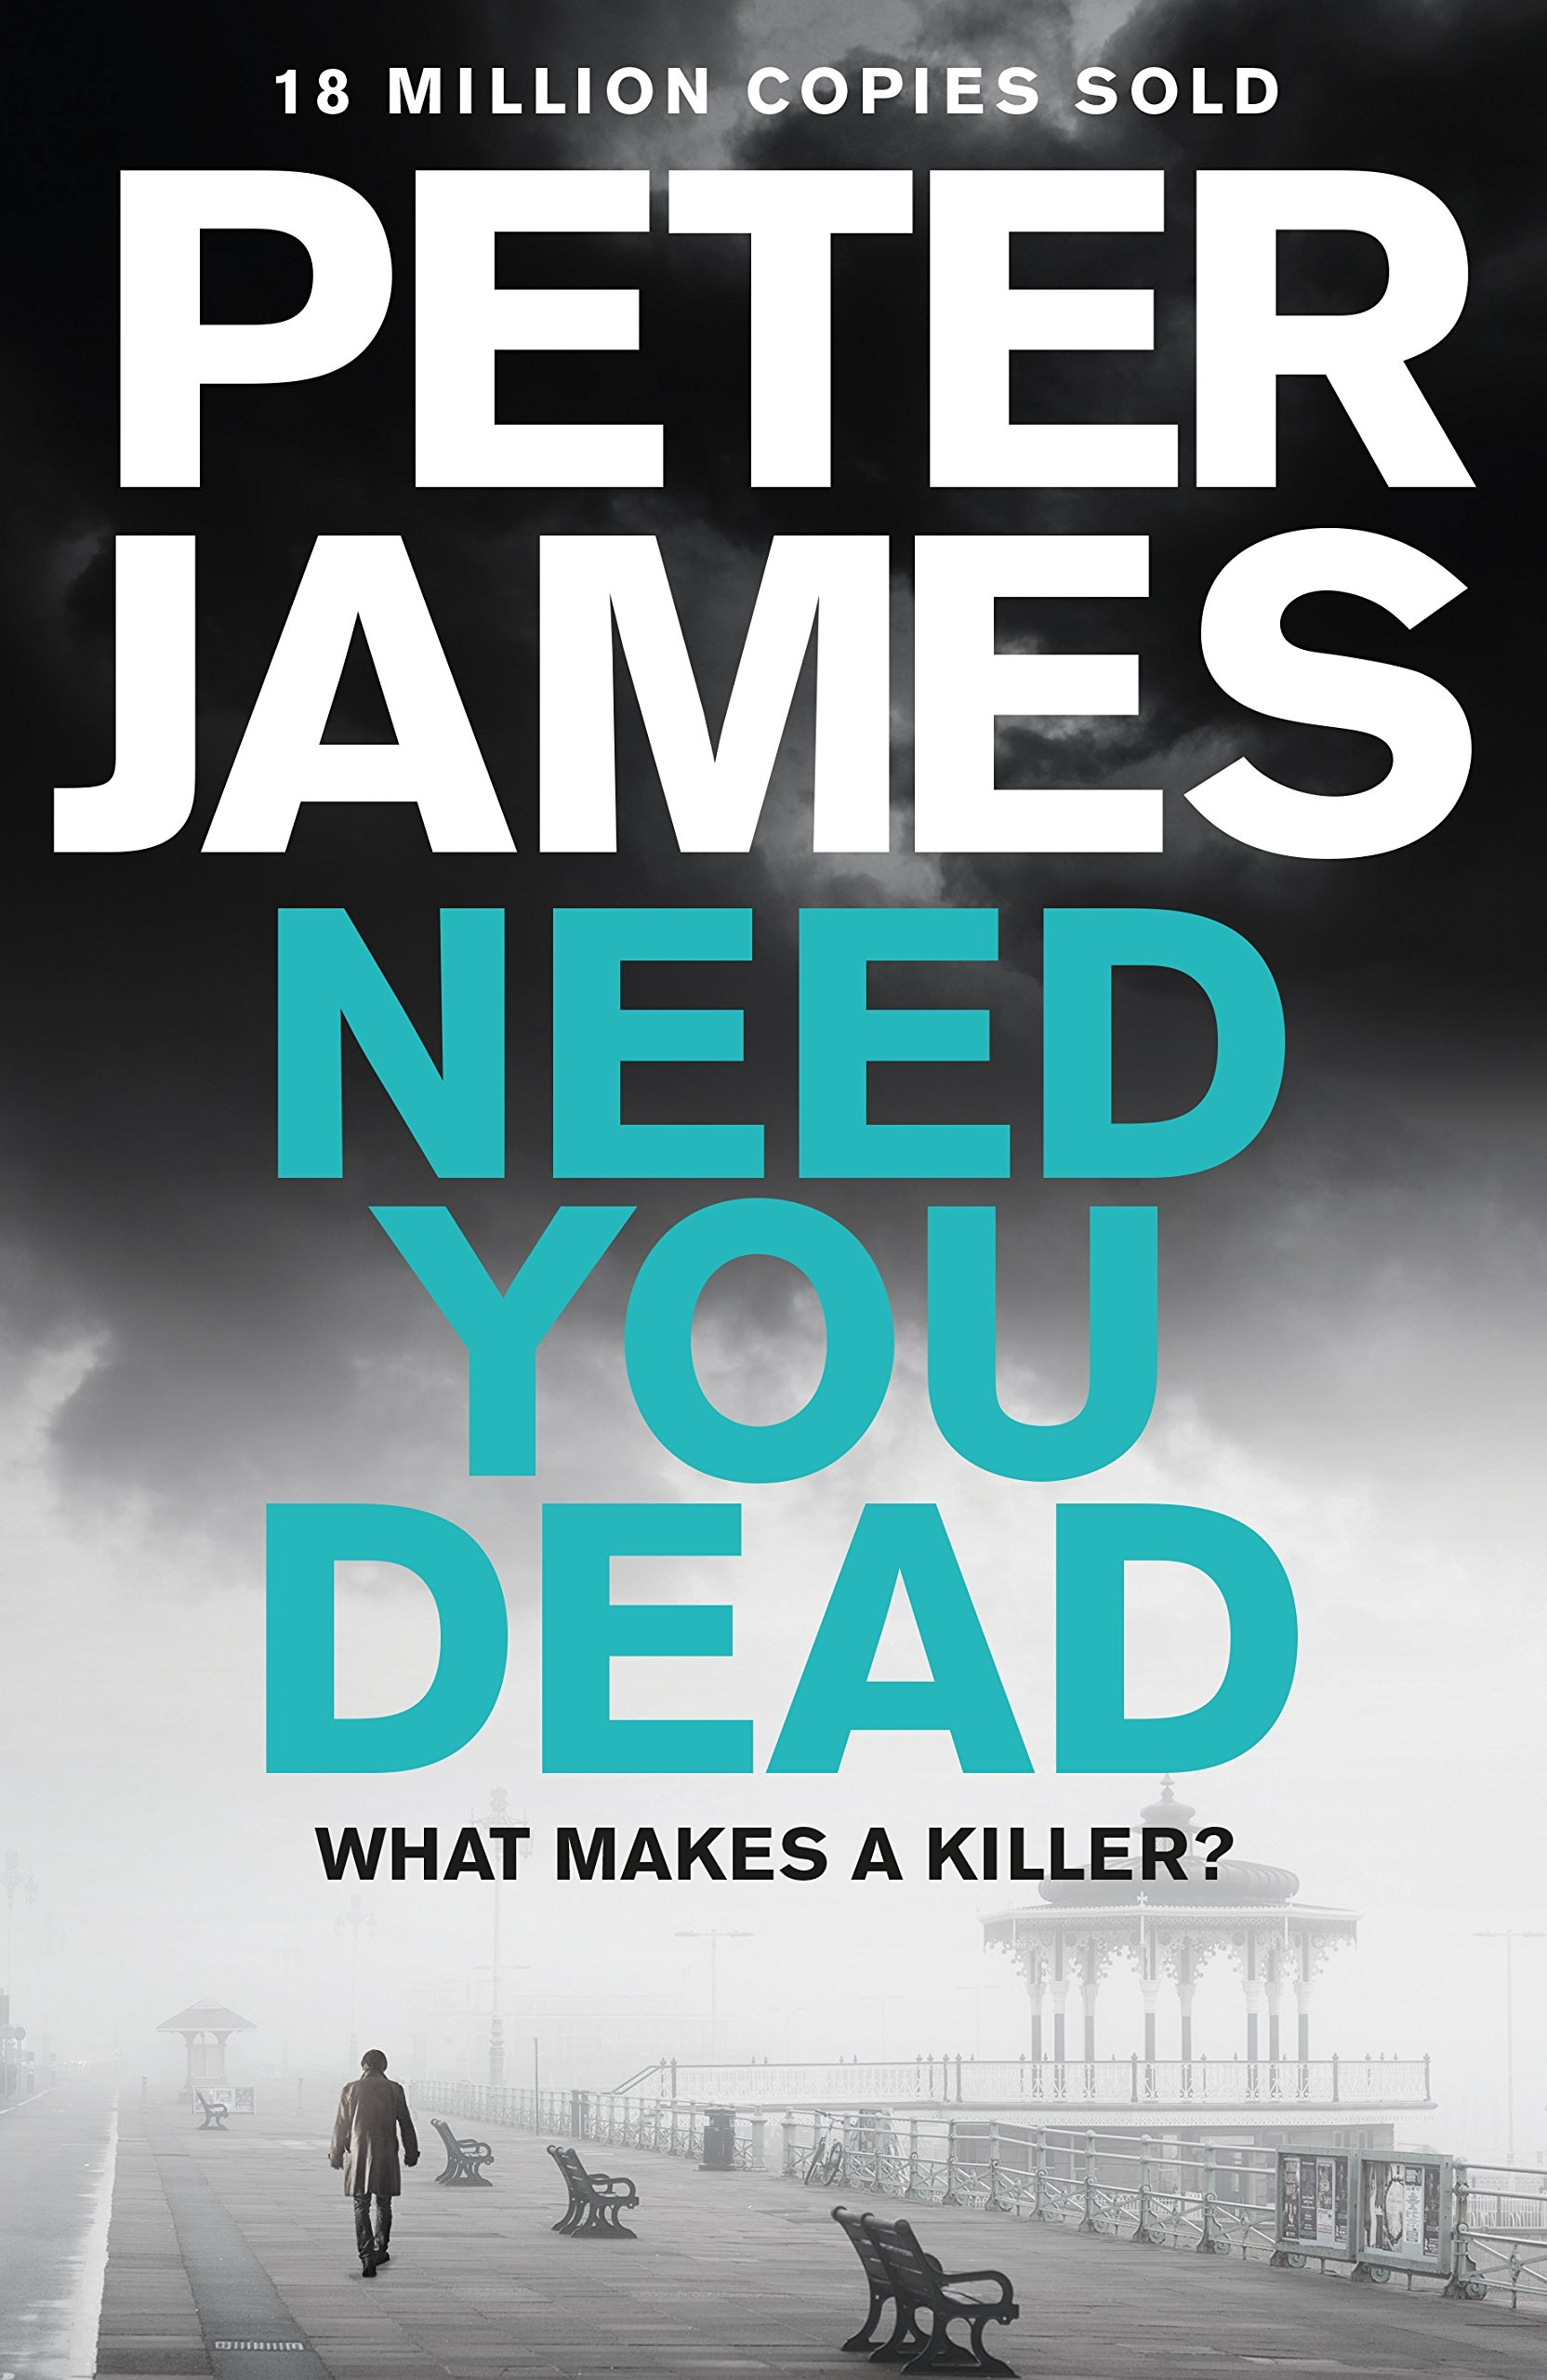 Discounted copies of Need You Dead by Peter James